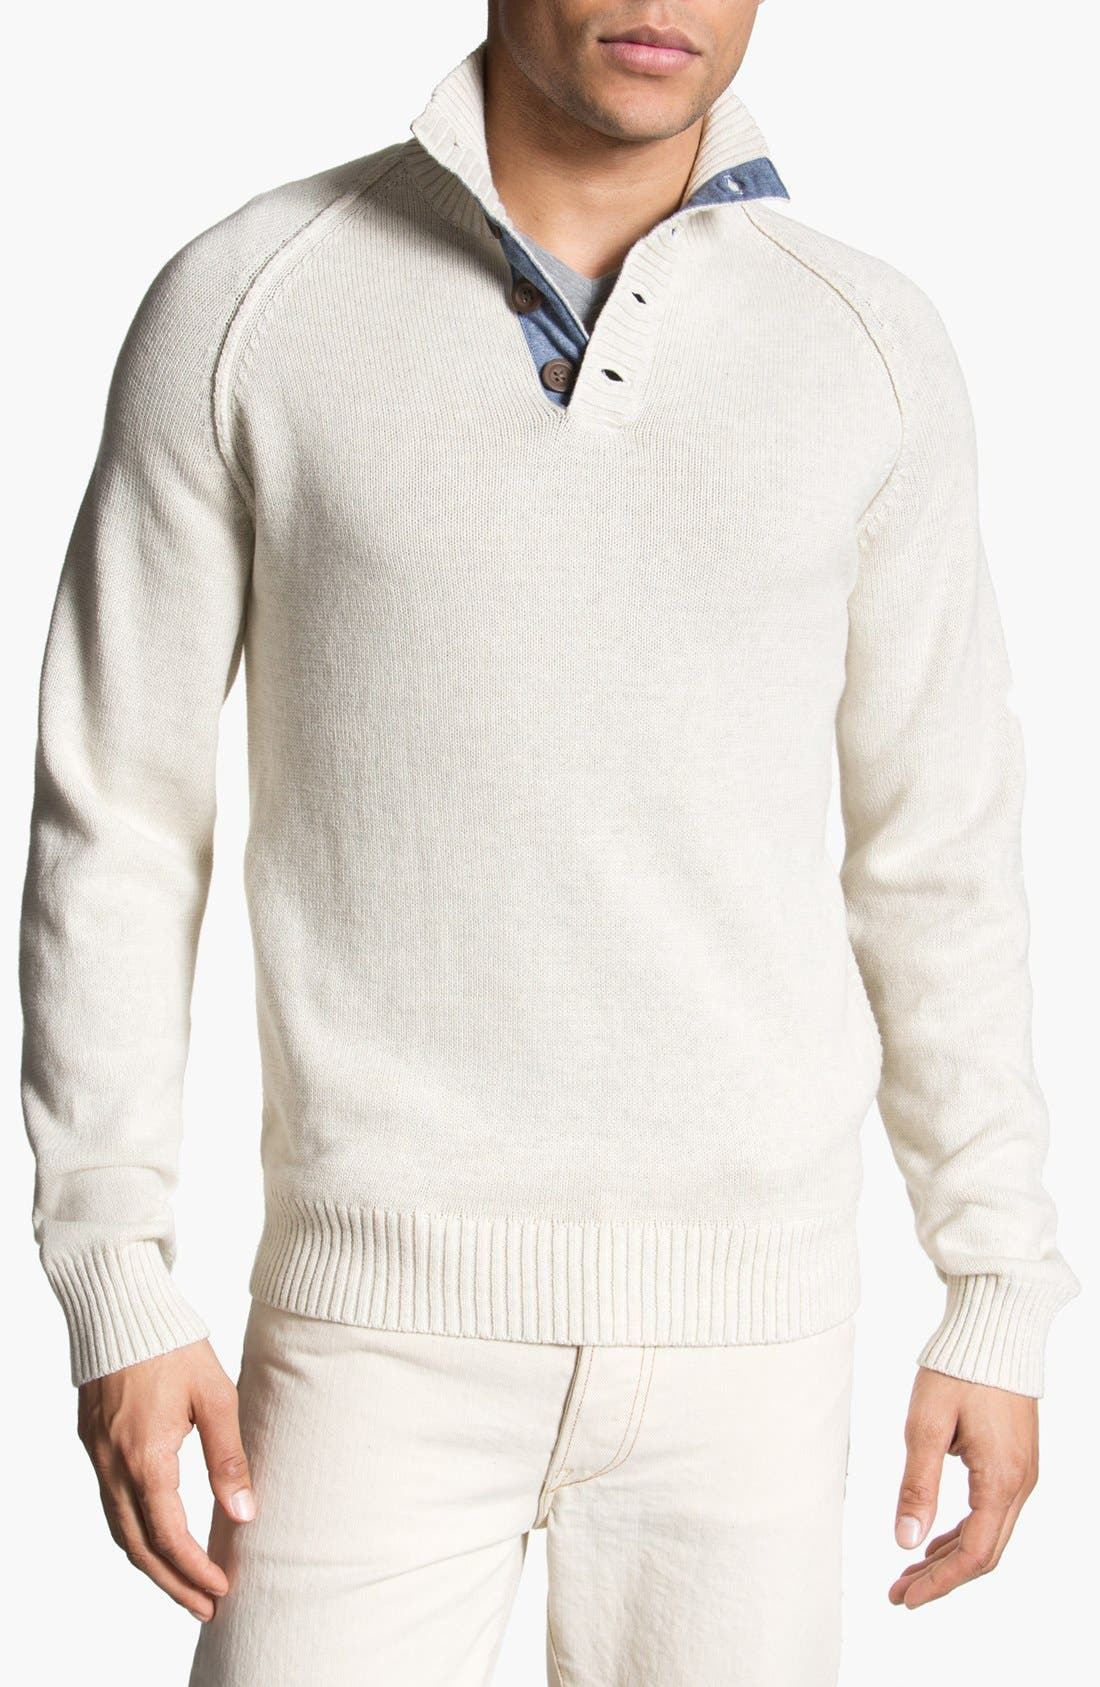 Main Image - 1901 'Pacific' Mock Neck Sweater